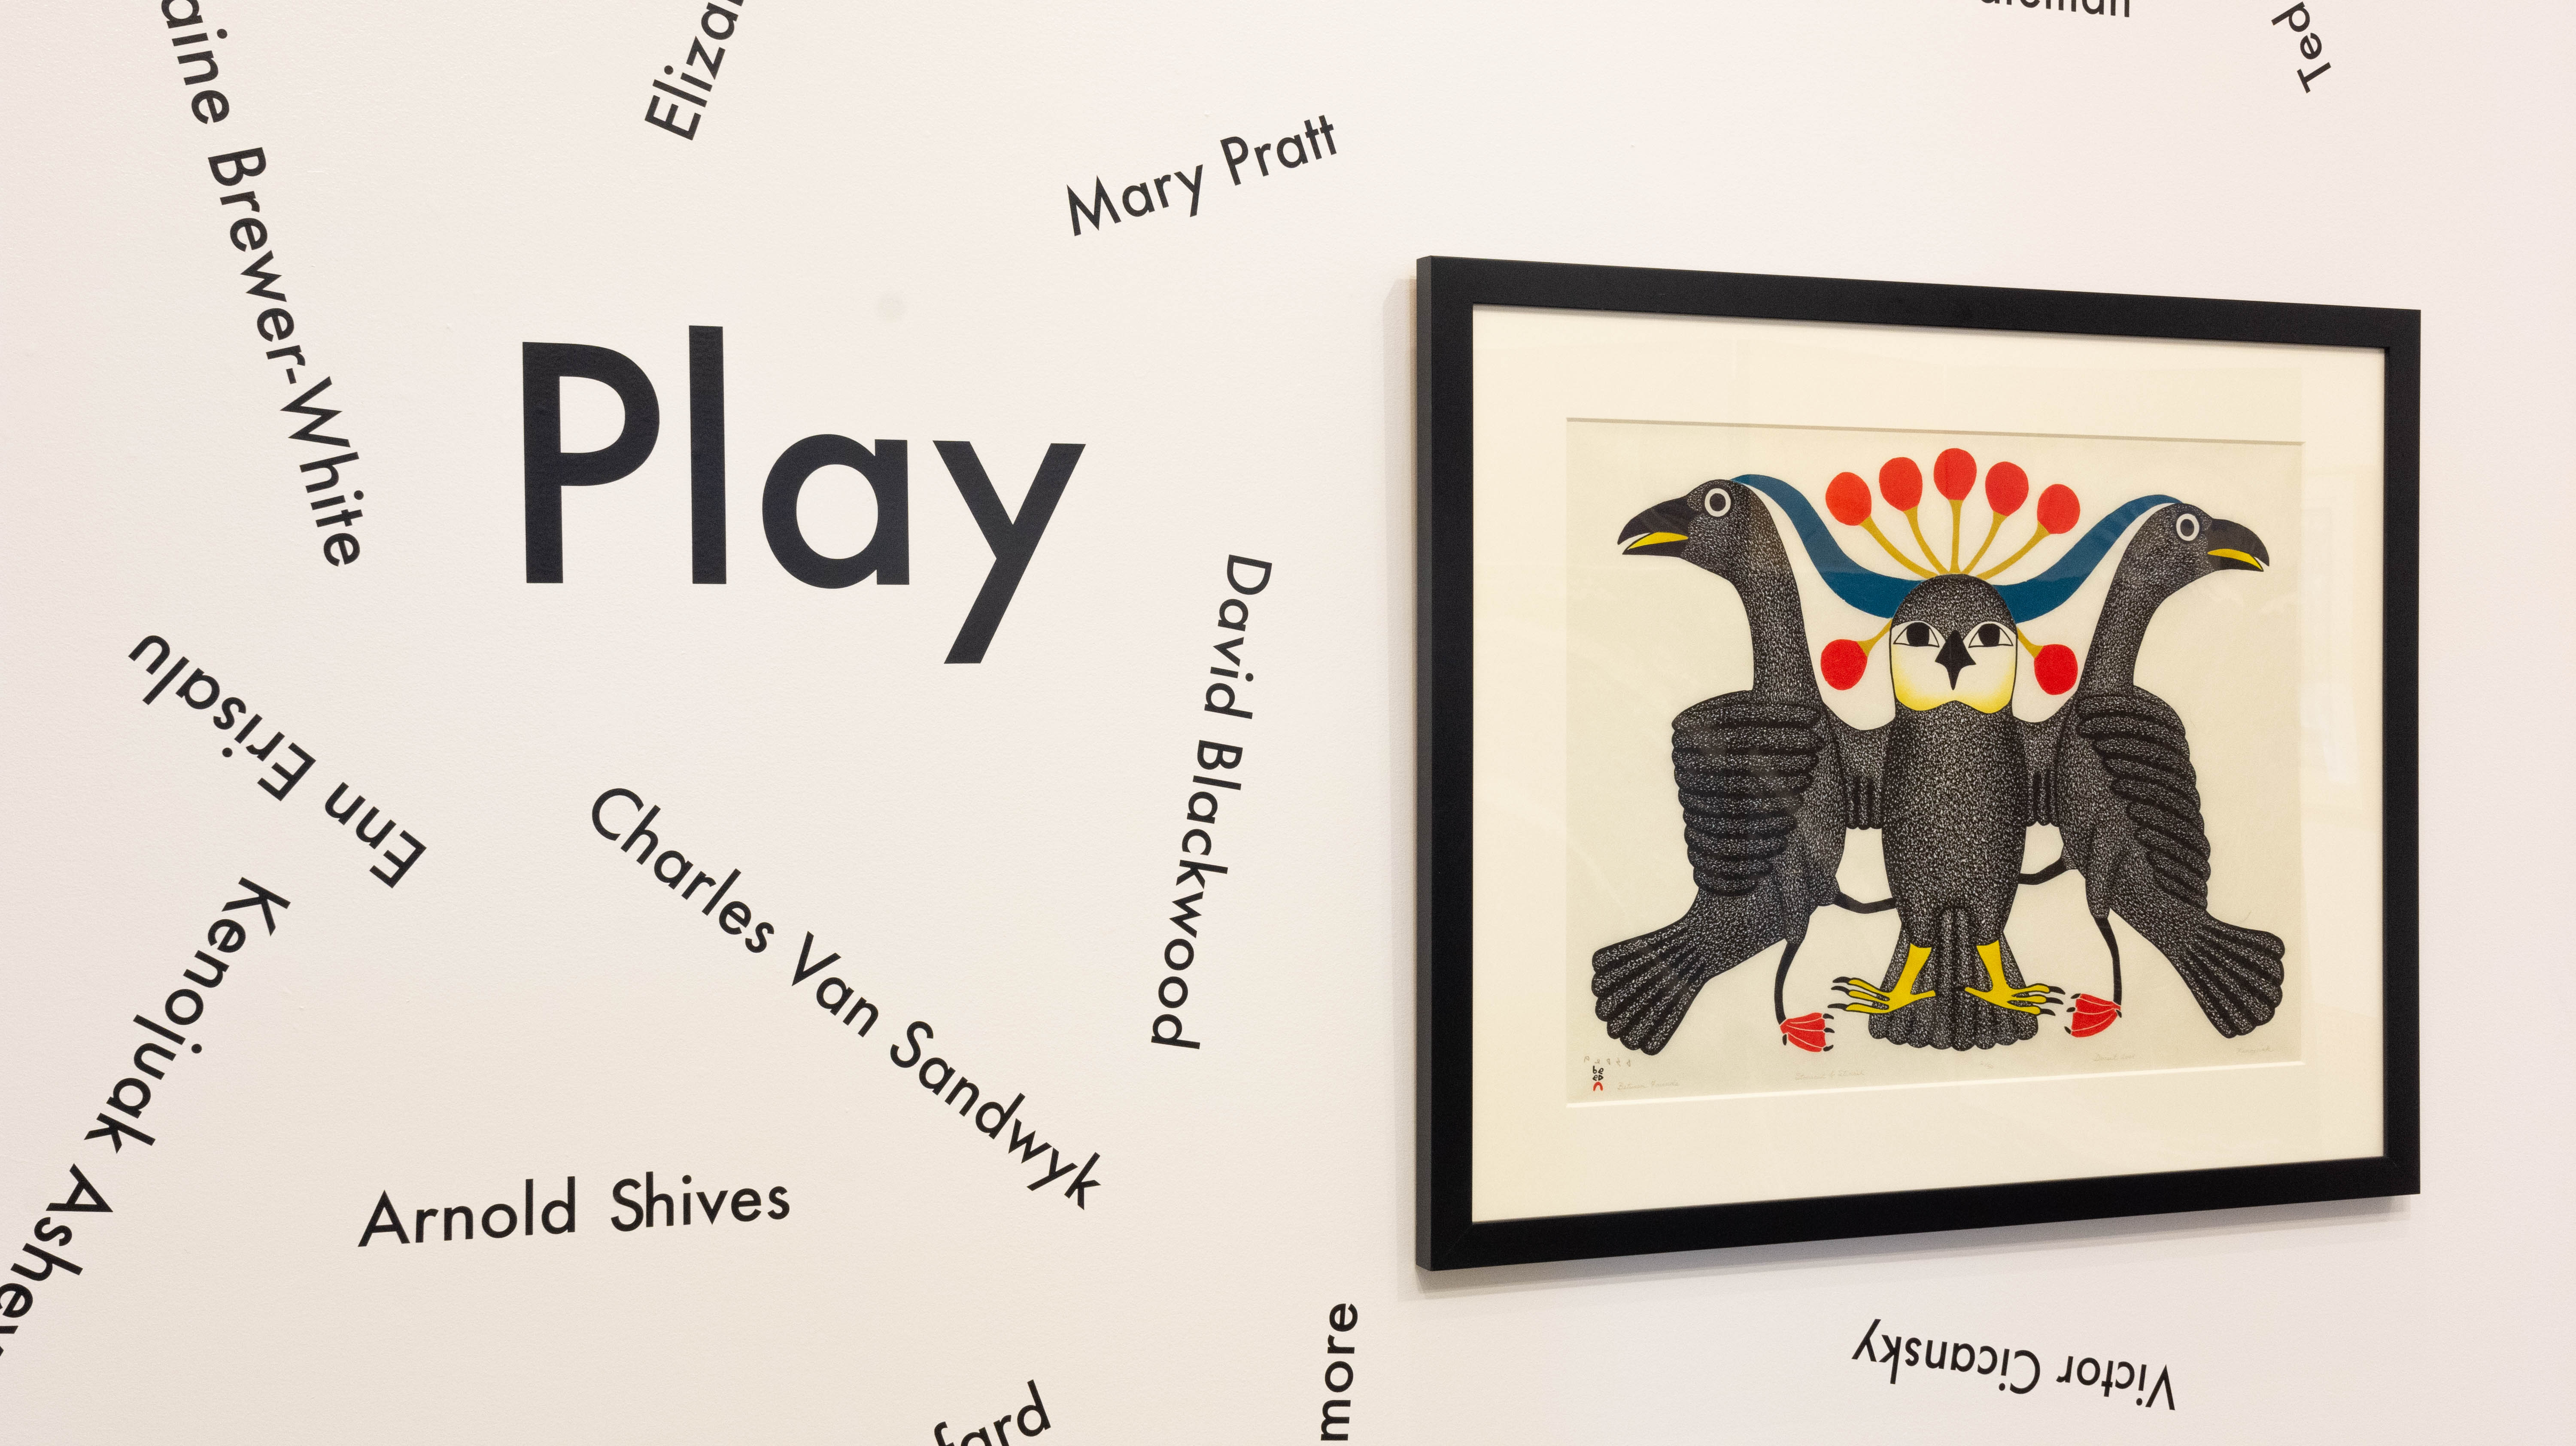 Take a virtual tour of our Play exhibition!